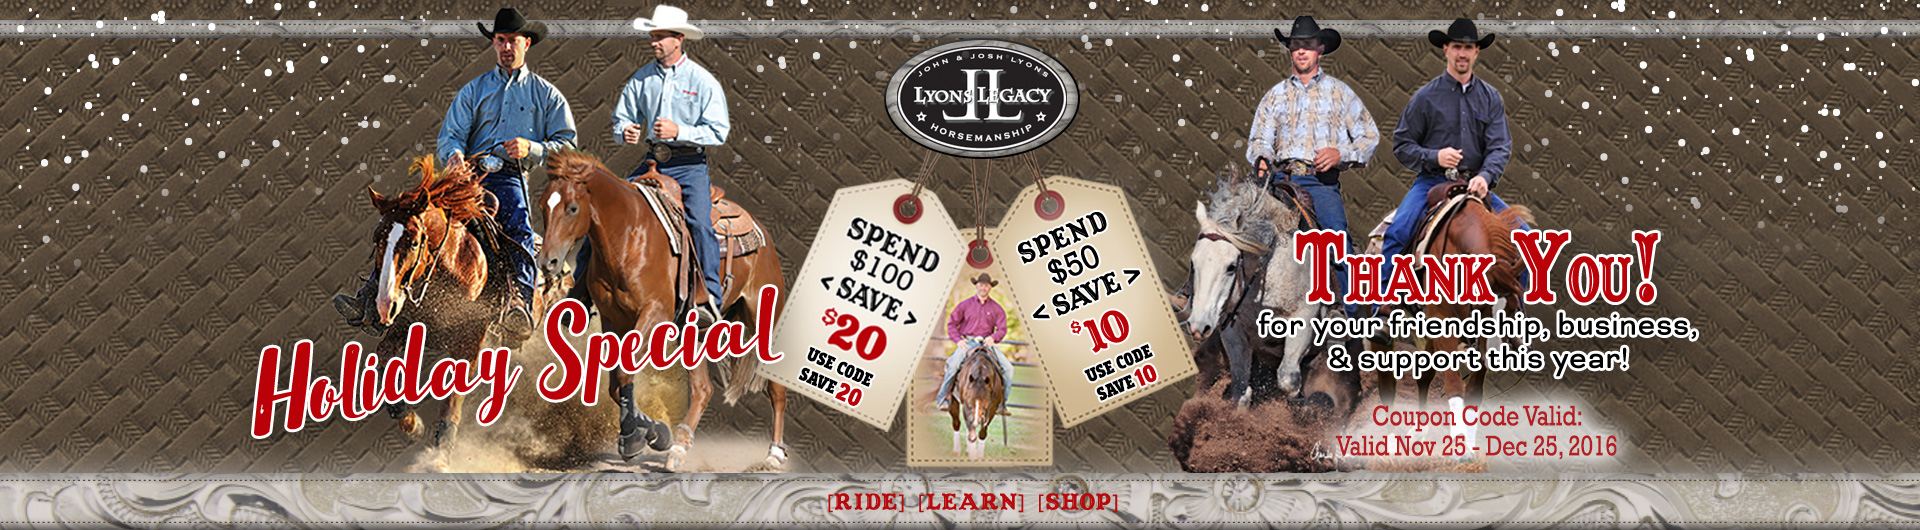 Holiday Special - Spend $100 Save $20 Spend $50 Save $10